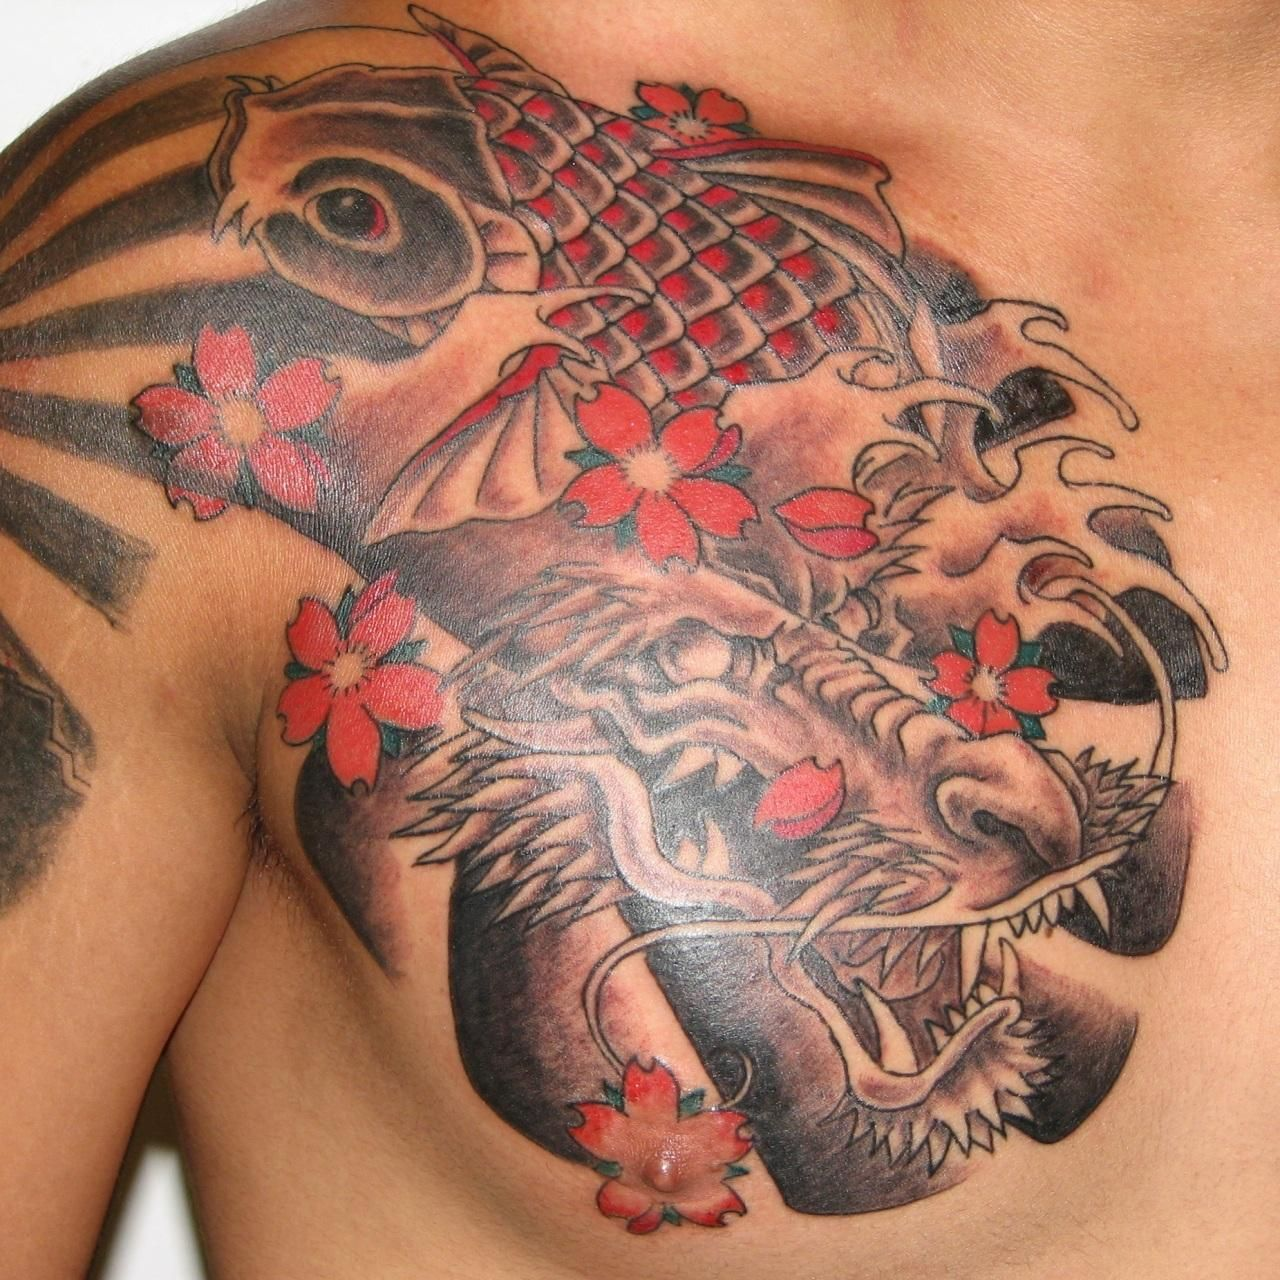 Tattoo Design For Men You Could Check Your Selections And Possibilities Of Great Body Artworks Especi Dragon Tattoos For Men Tattoos For Guys Koi Dragon Tattoo